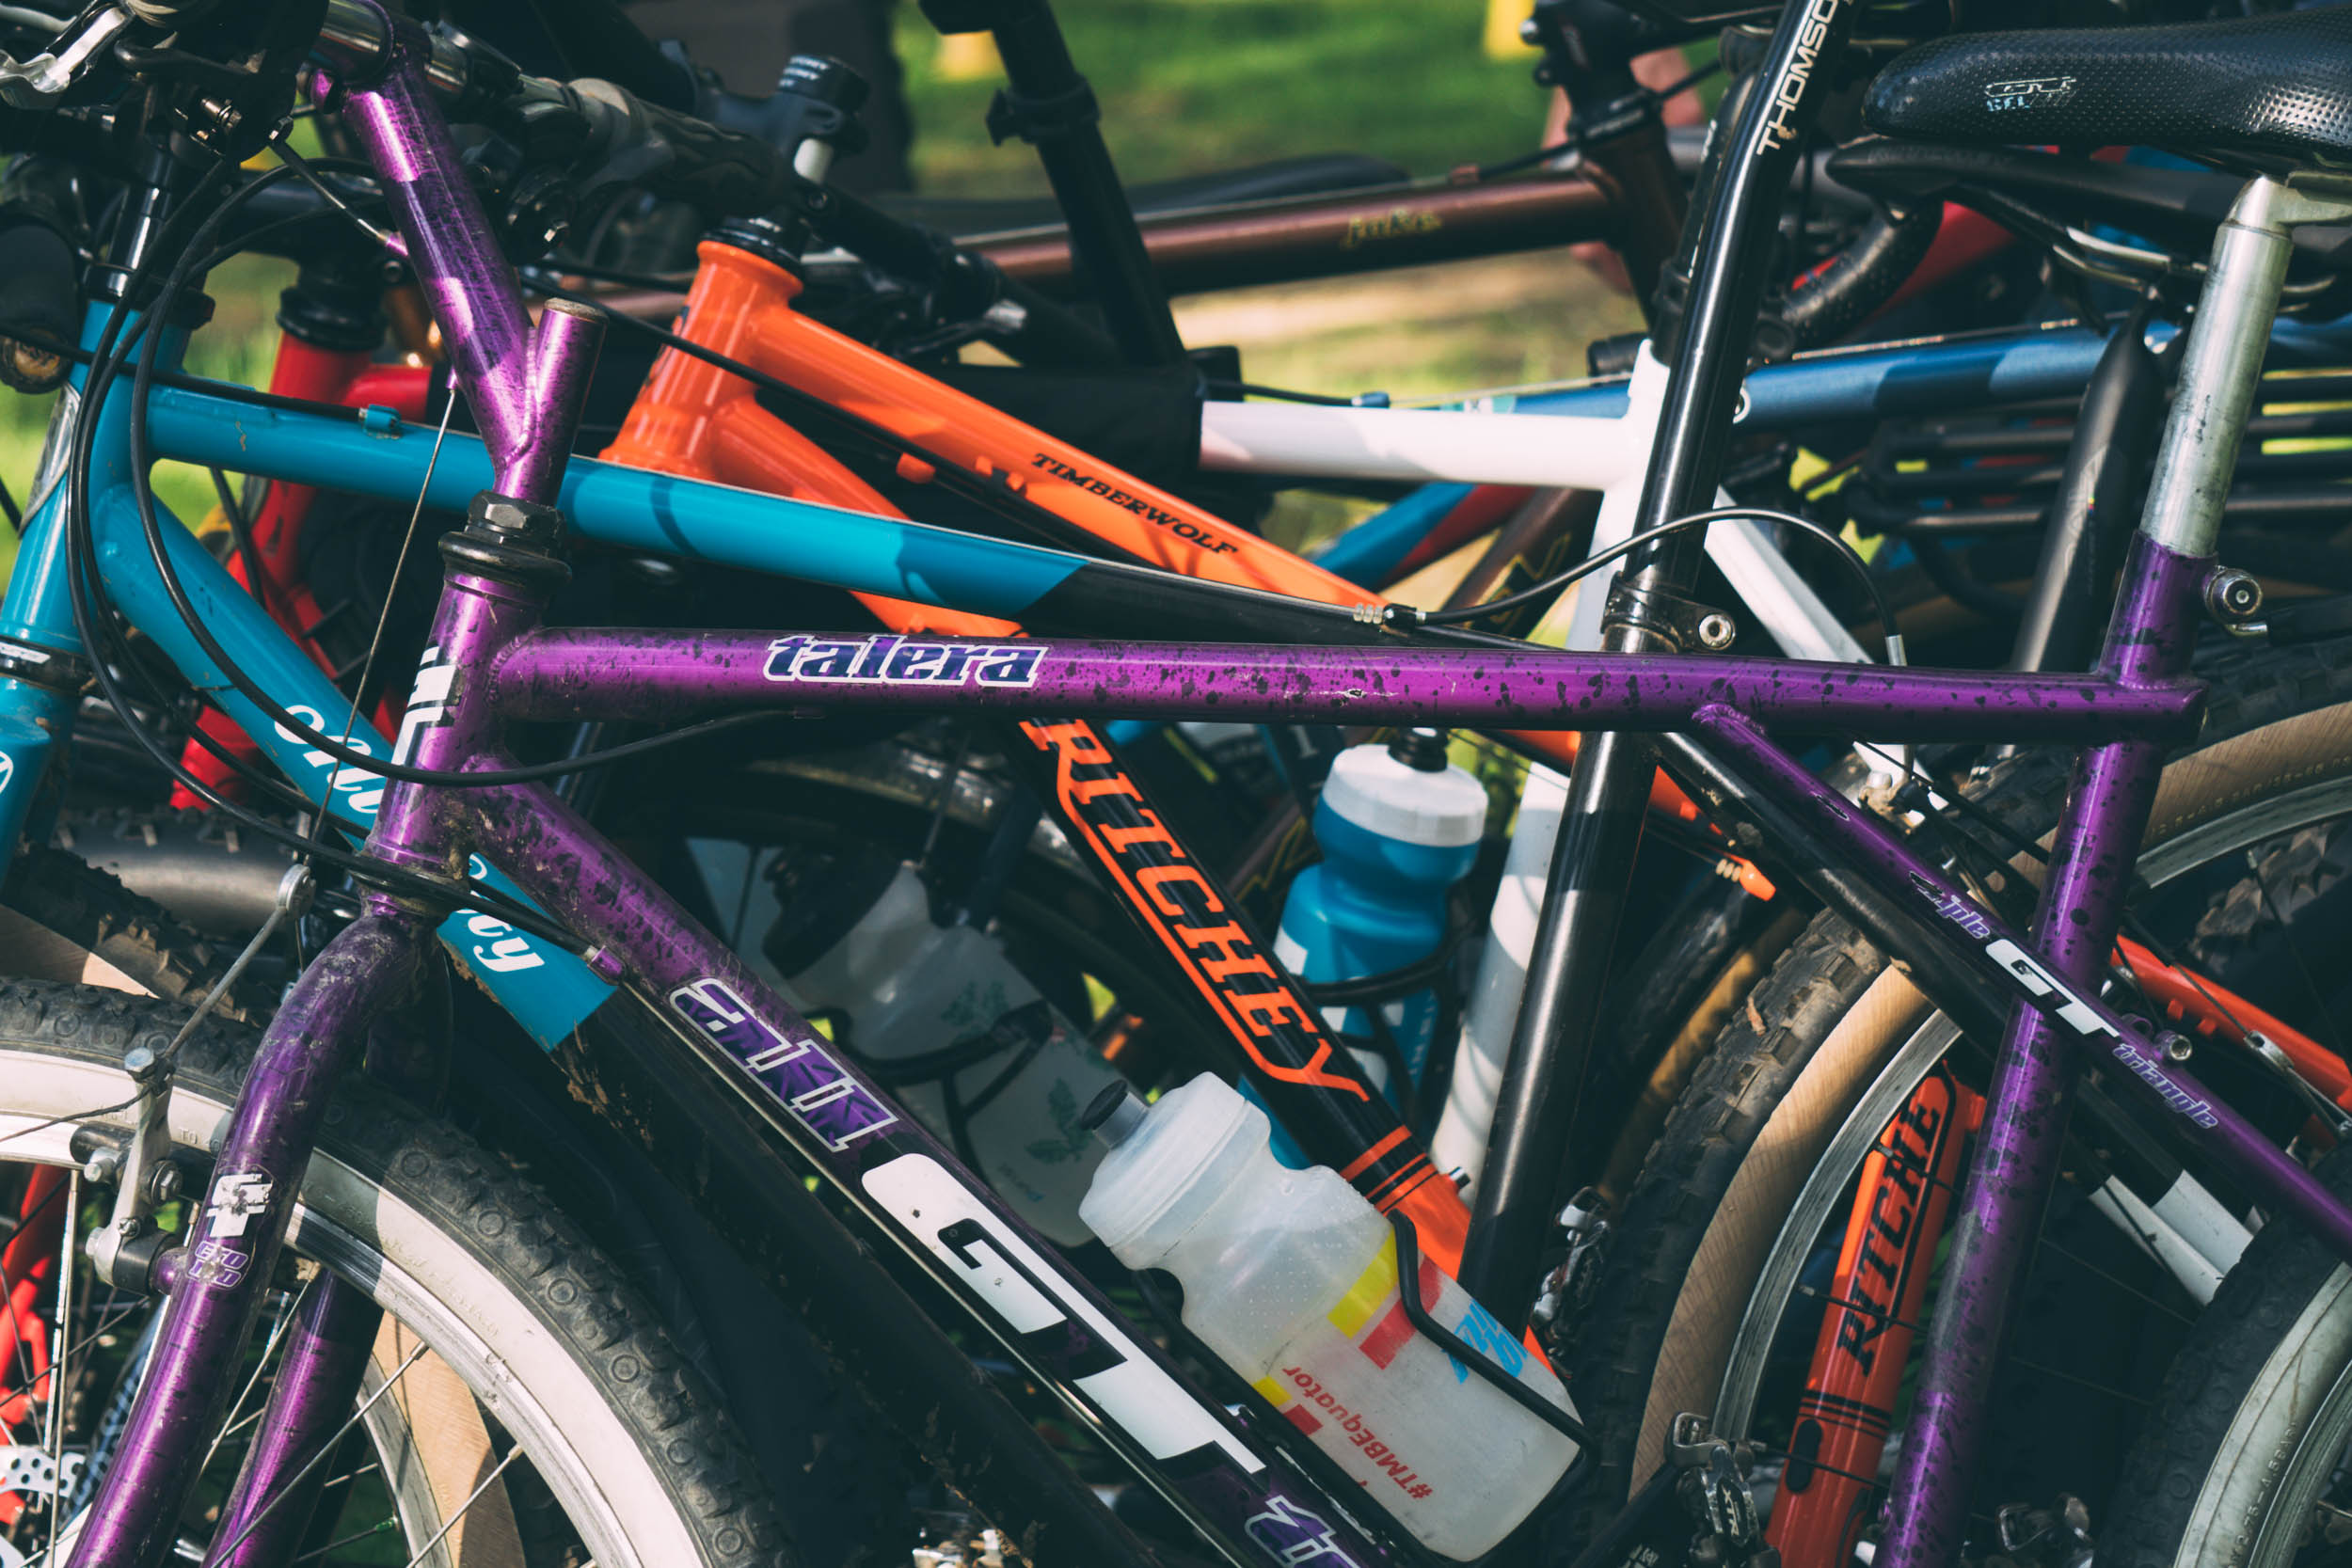 Bike stack. The new Ritchey Timberwolf is looking good!